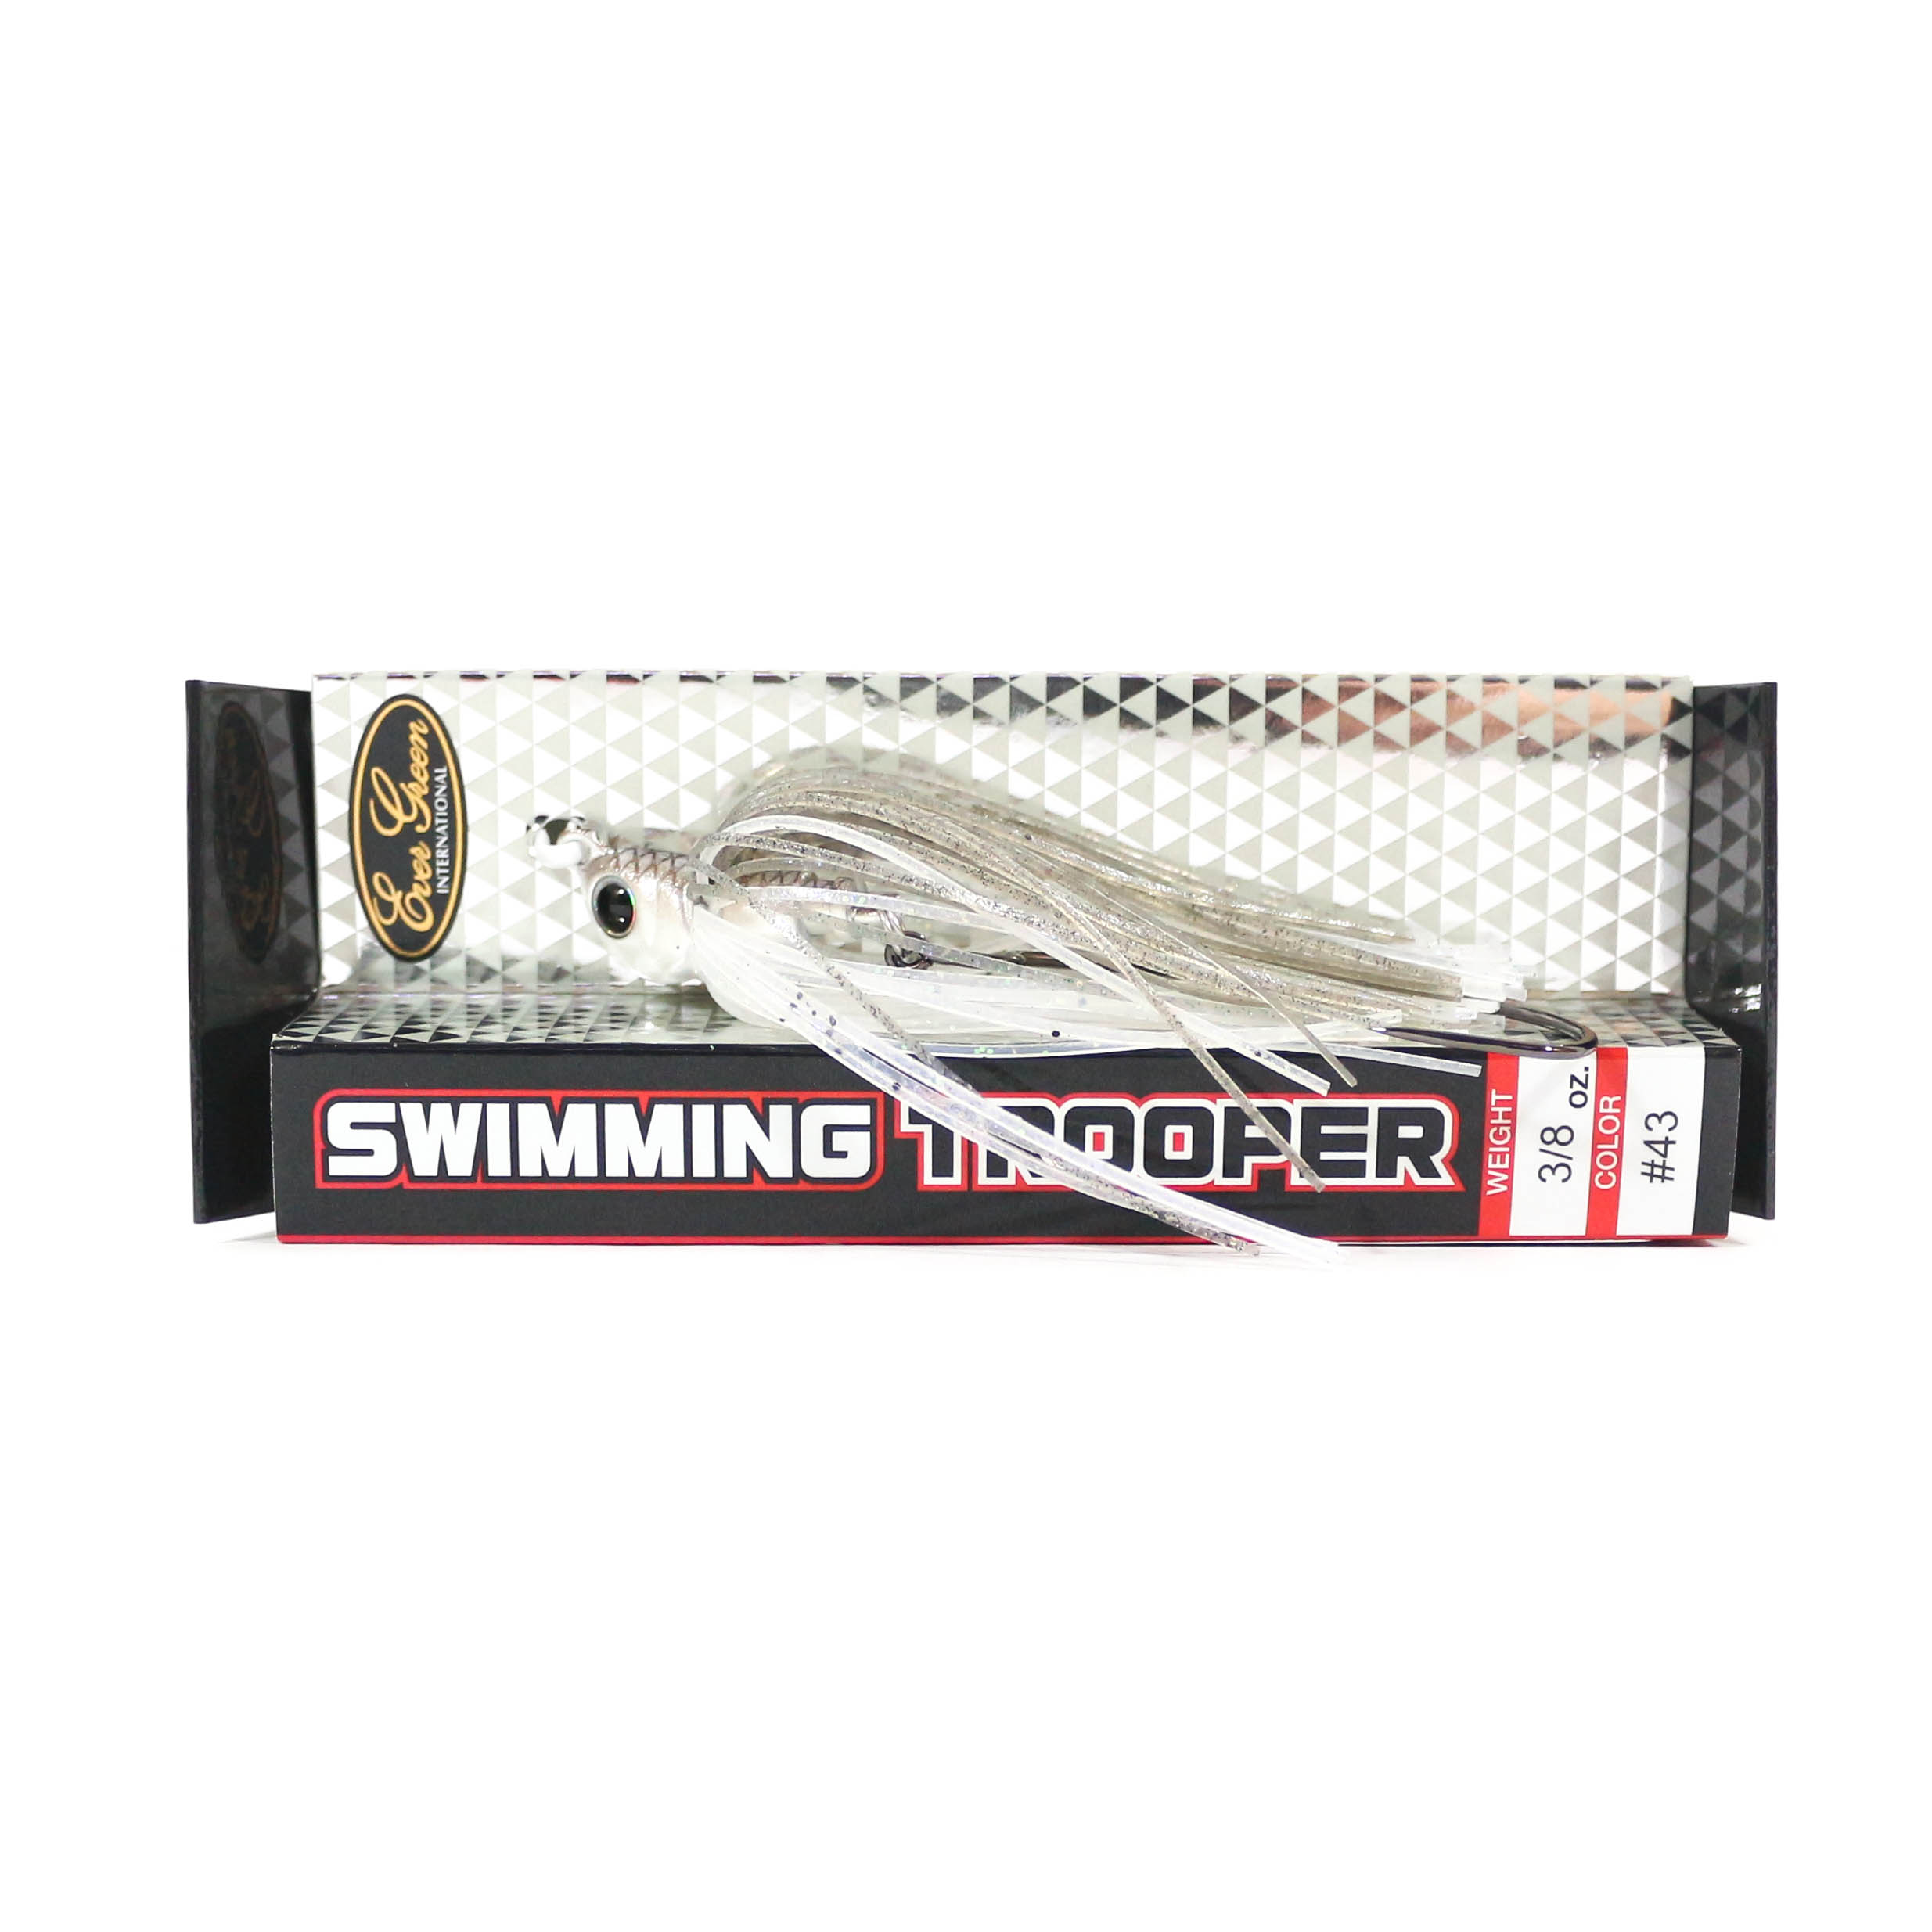 Evergreen Swimming Trooper Rubber Jig 3/8 oz Sinking Lure 43 (7052)